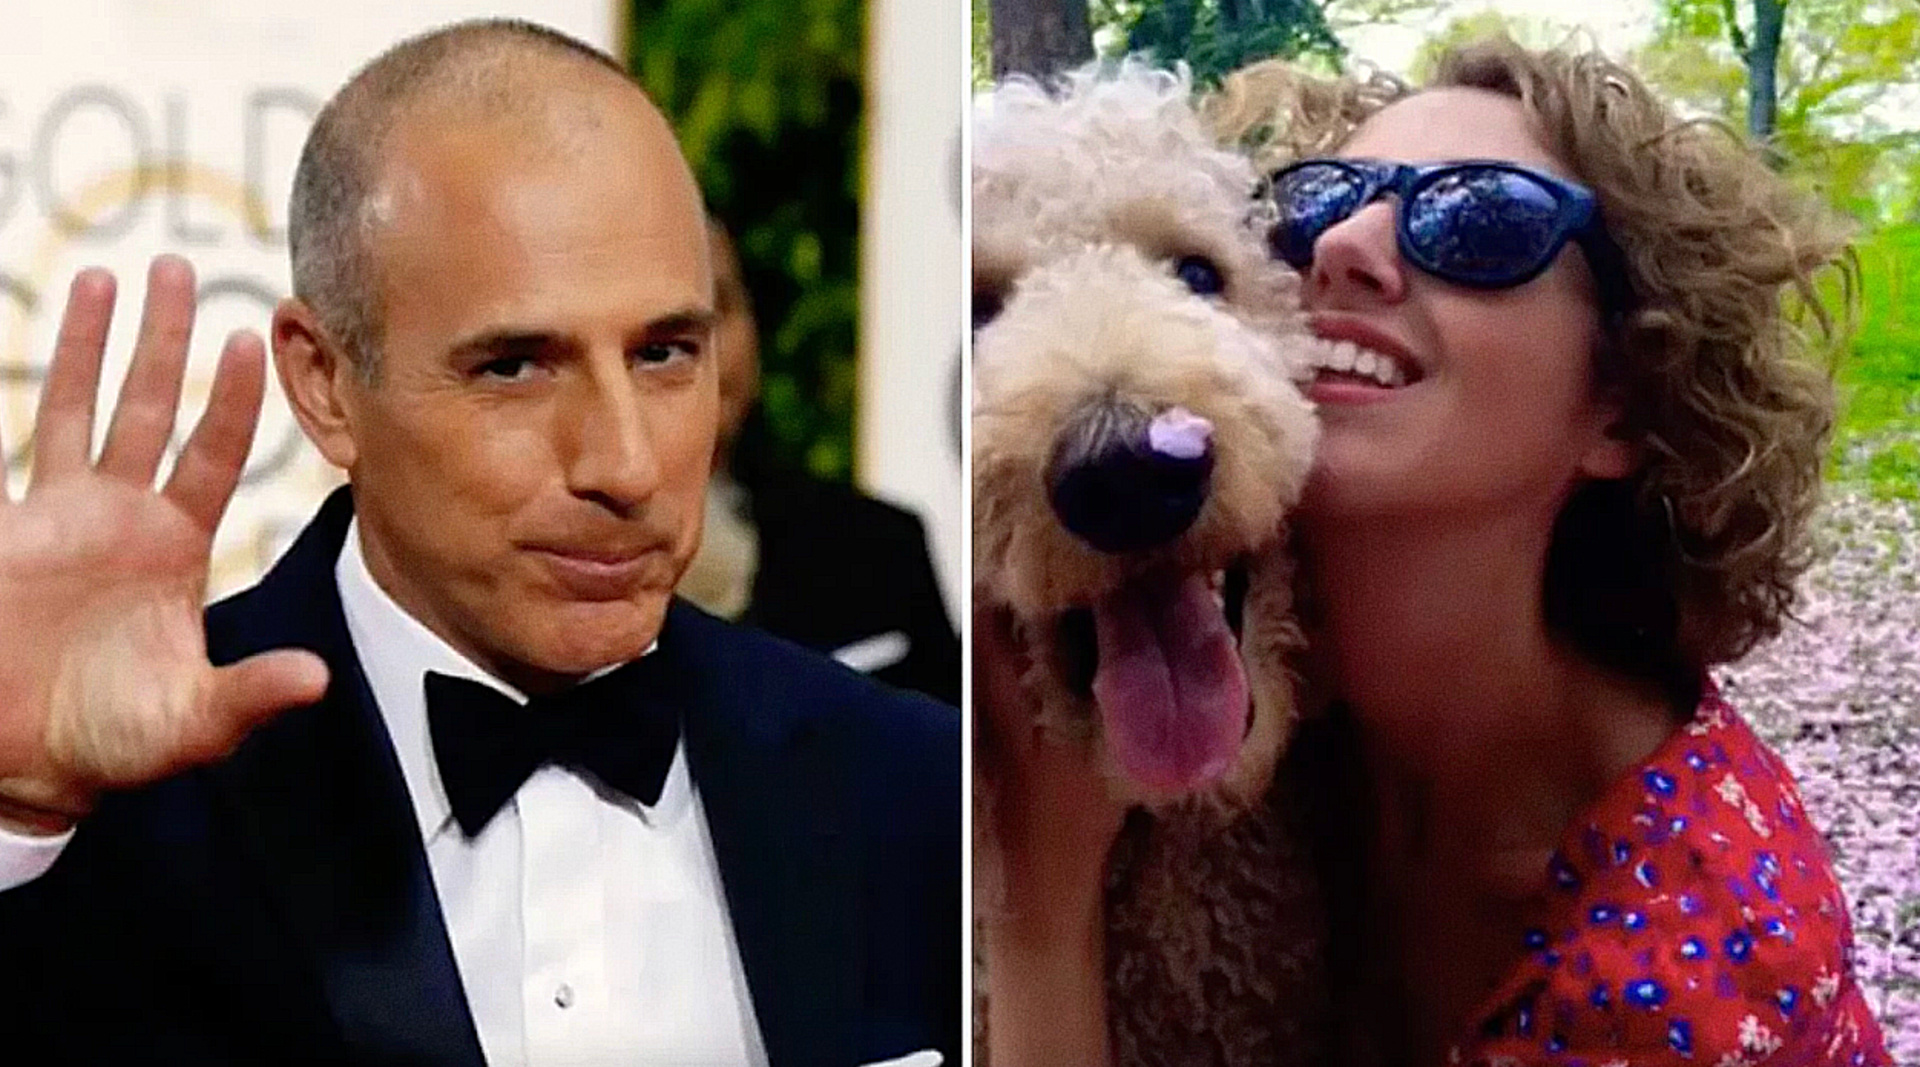 Accuser Brooke Nevils comes forward with more allegations against Matt Lauer, claims the history of abuse ...